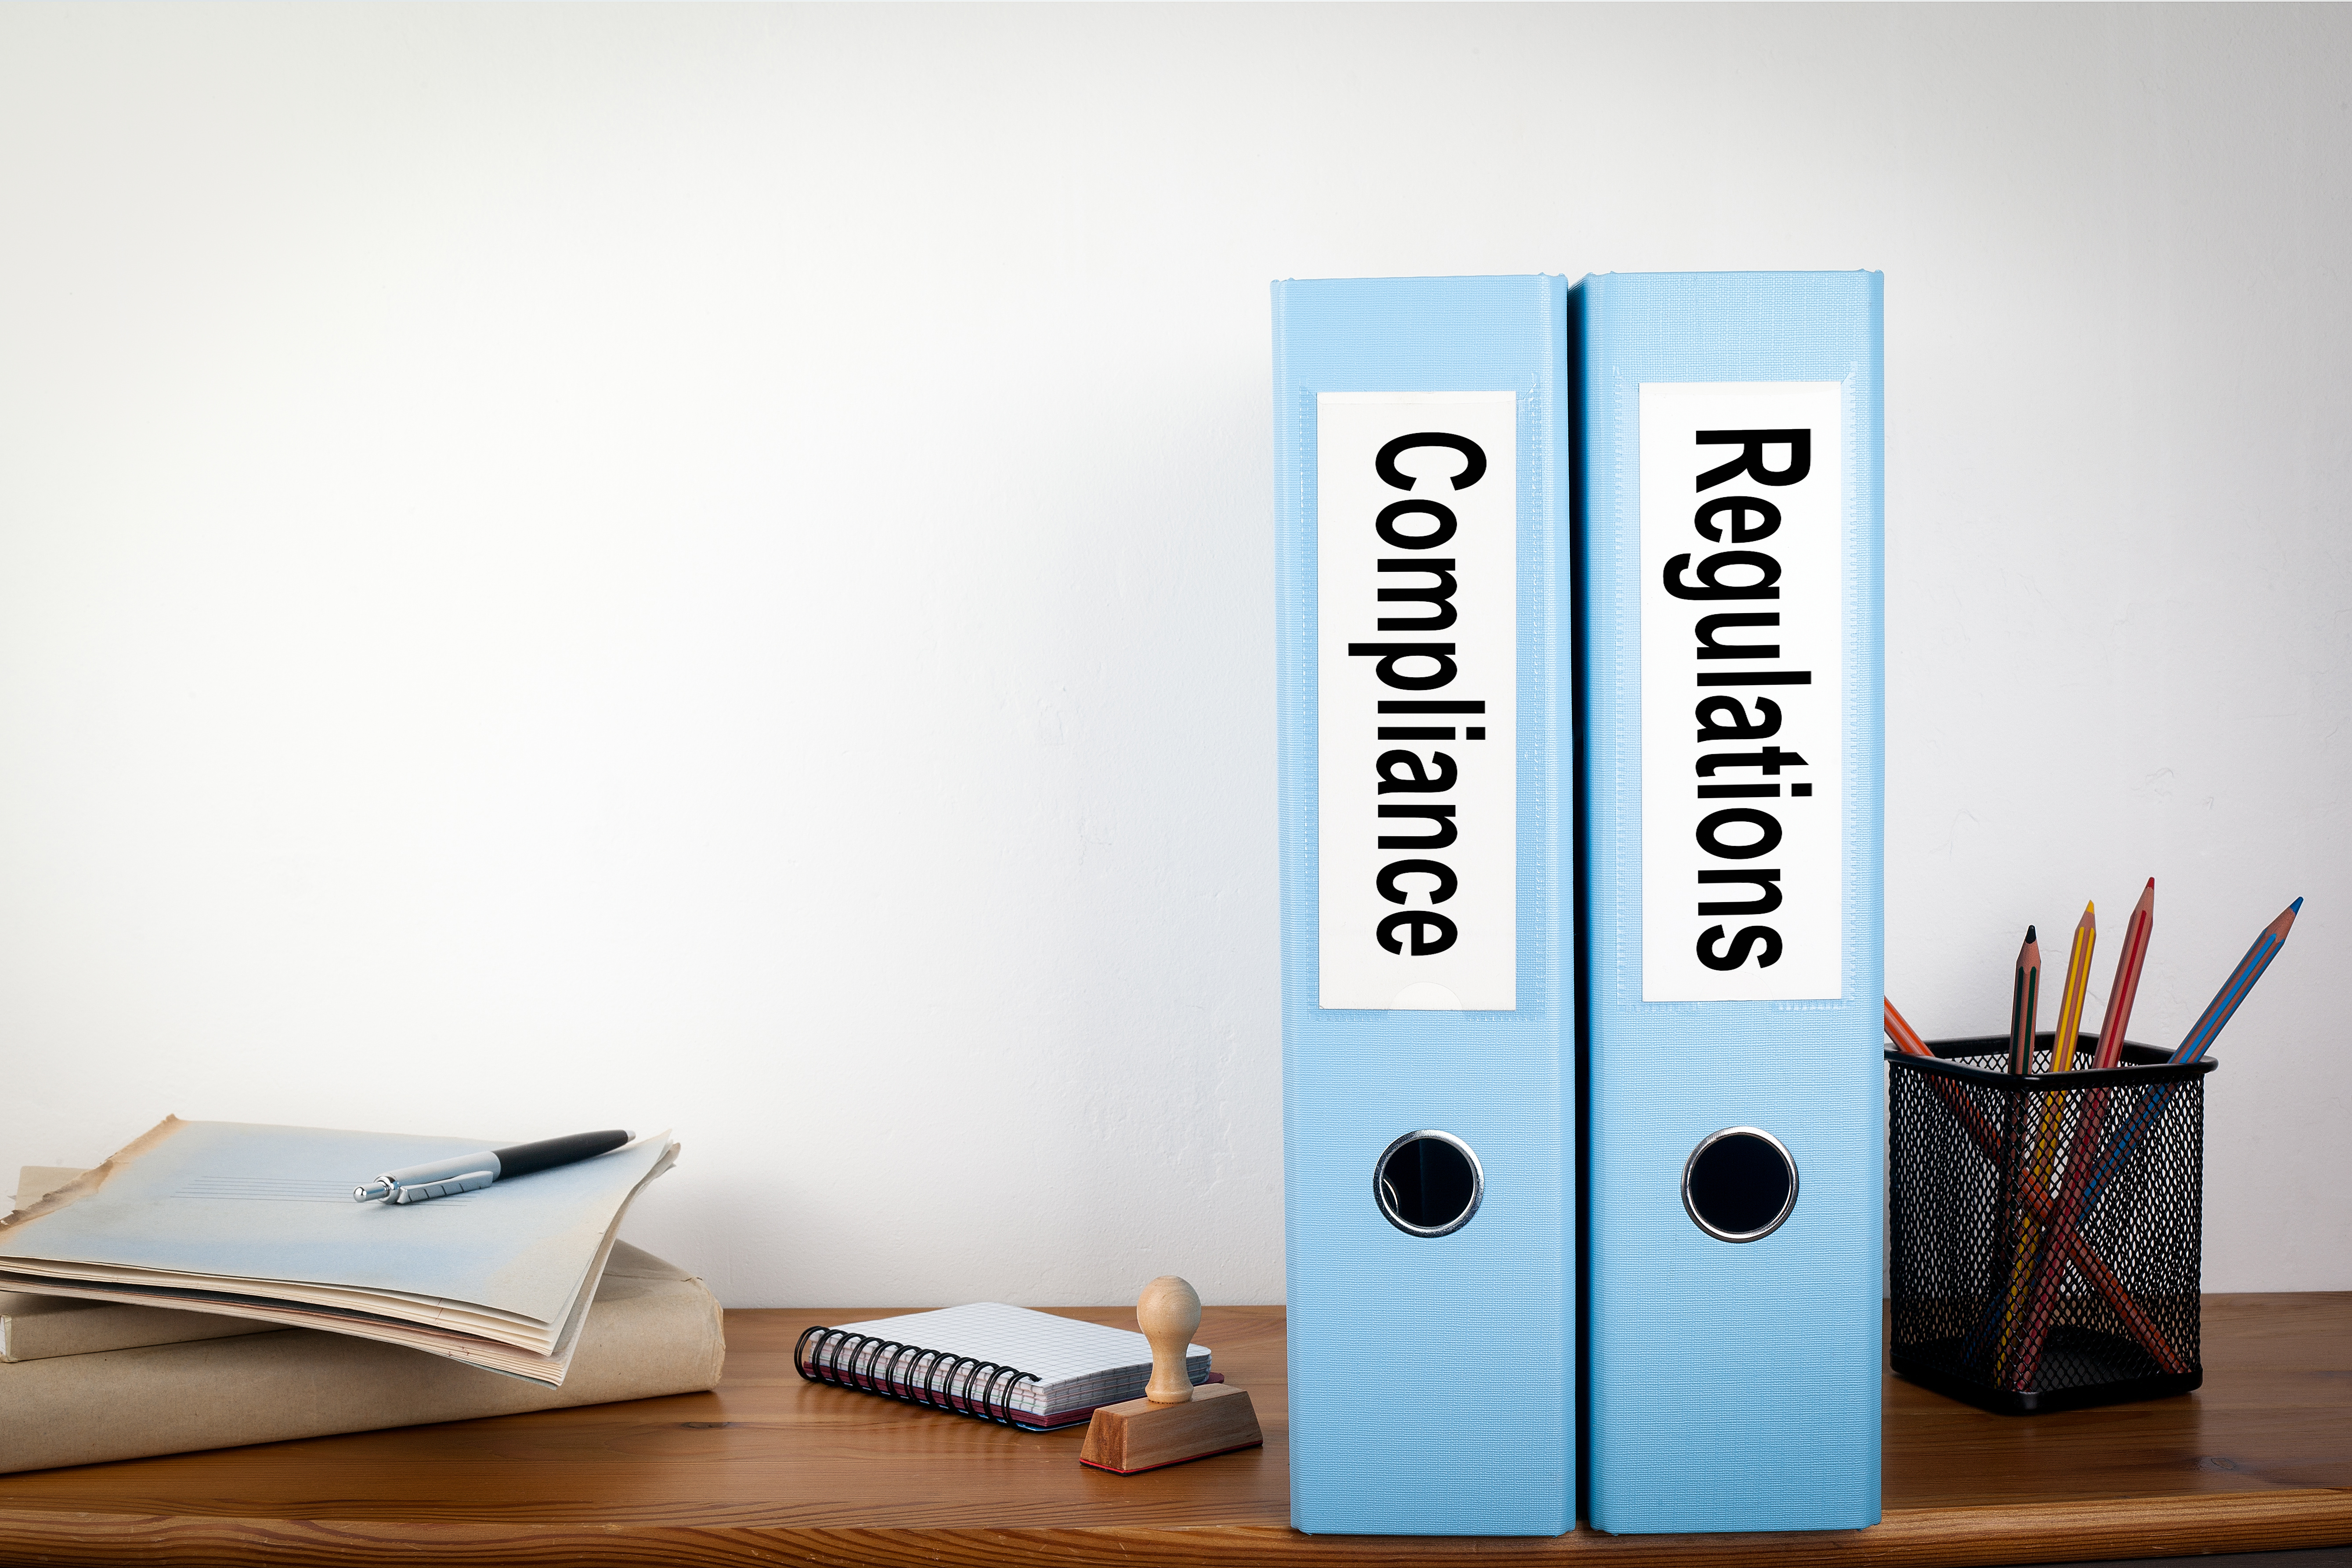 Compliance and Regulations binders in the office. Stationery on a wooden shelf